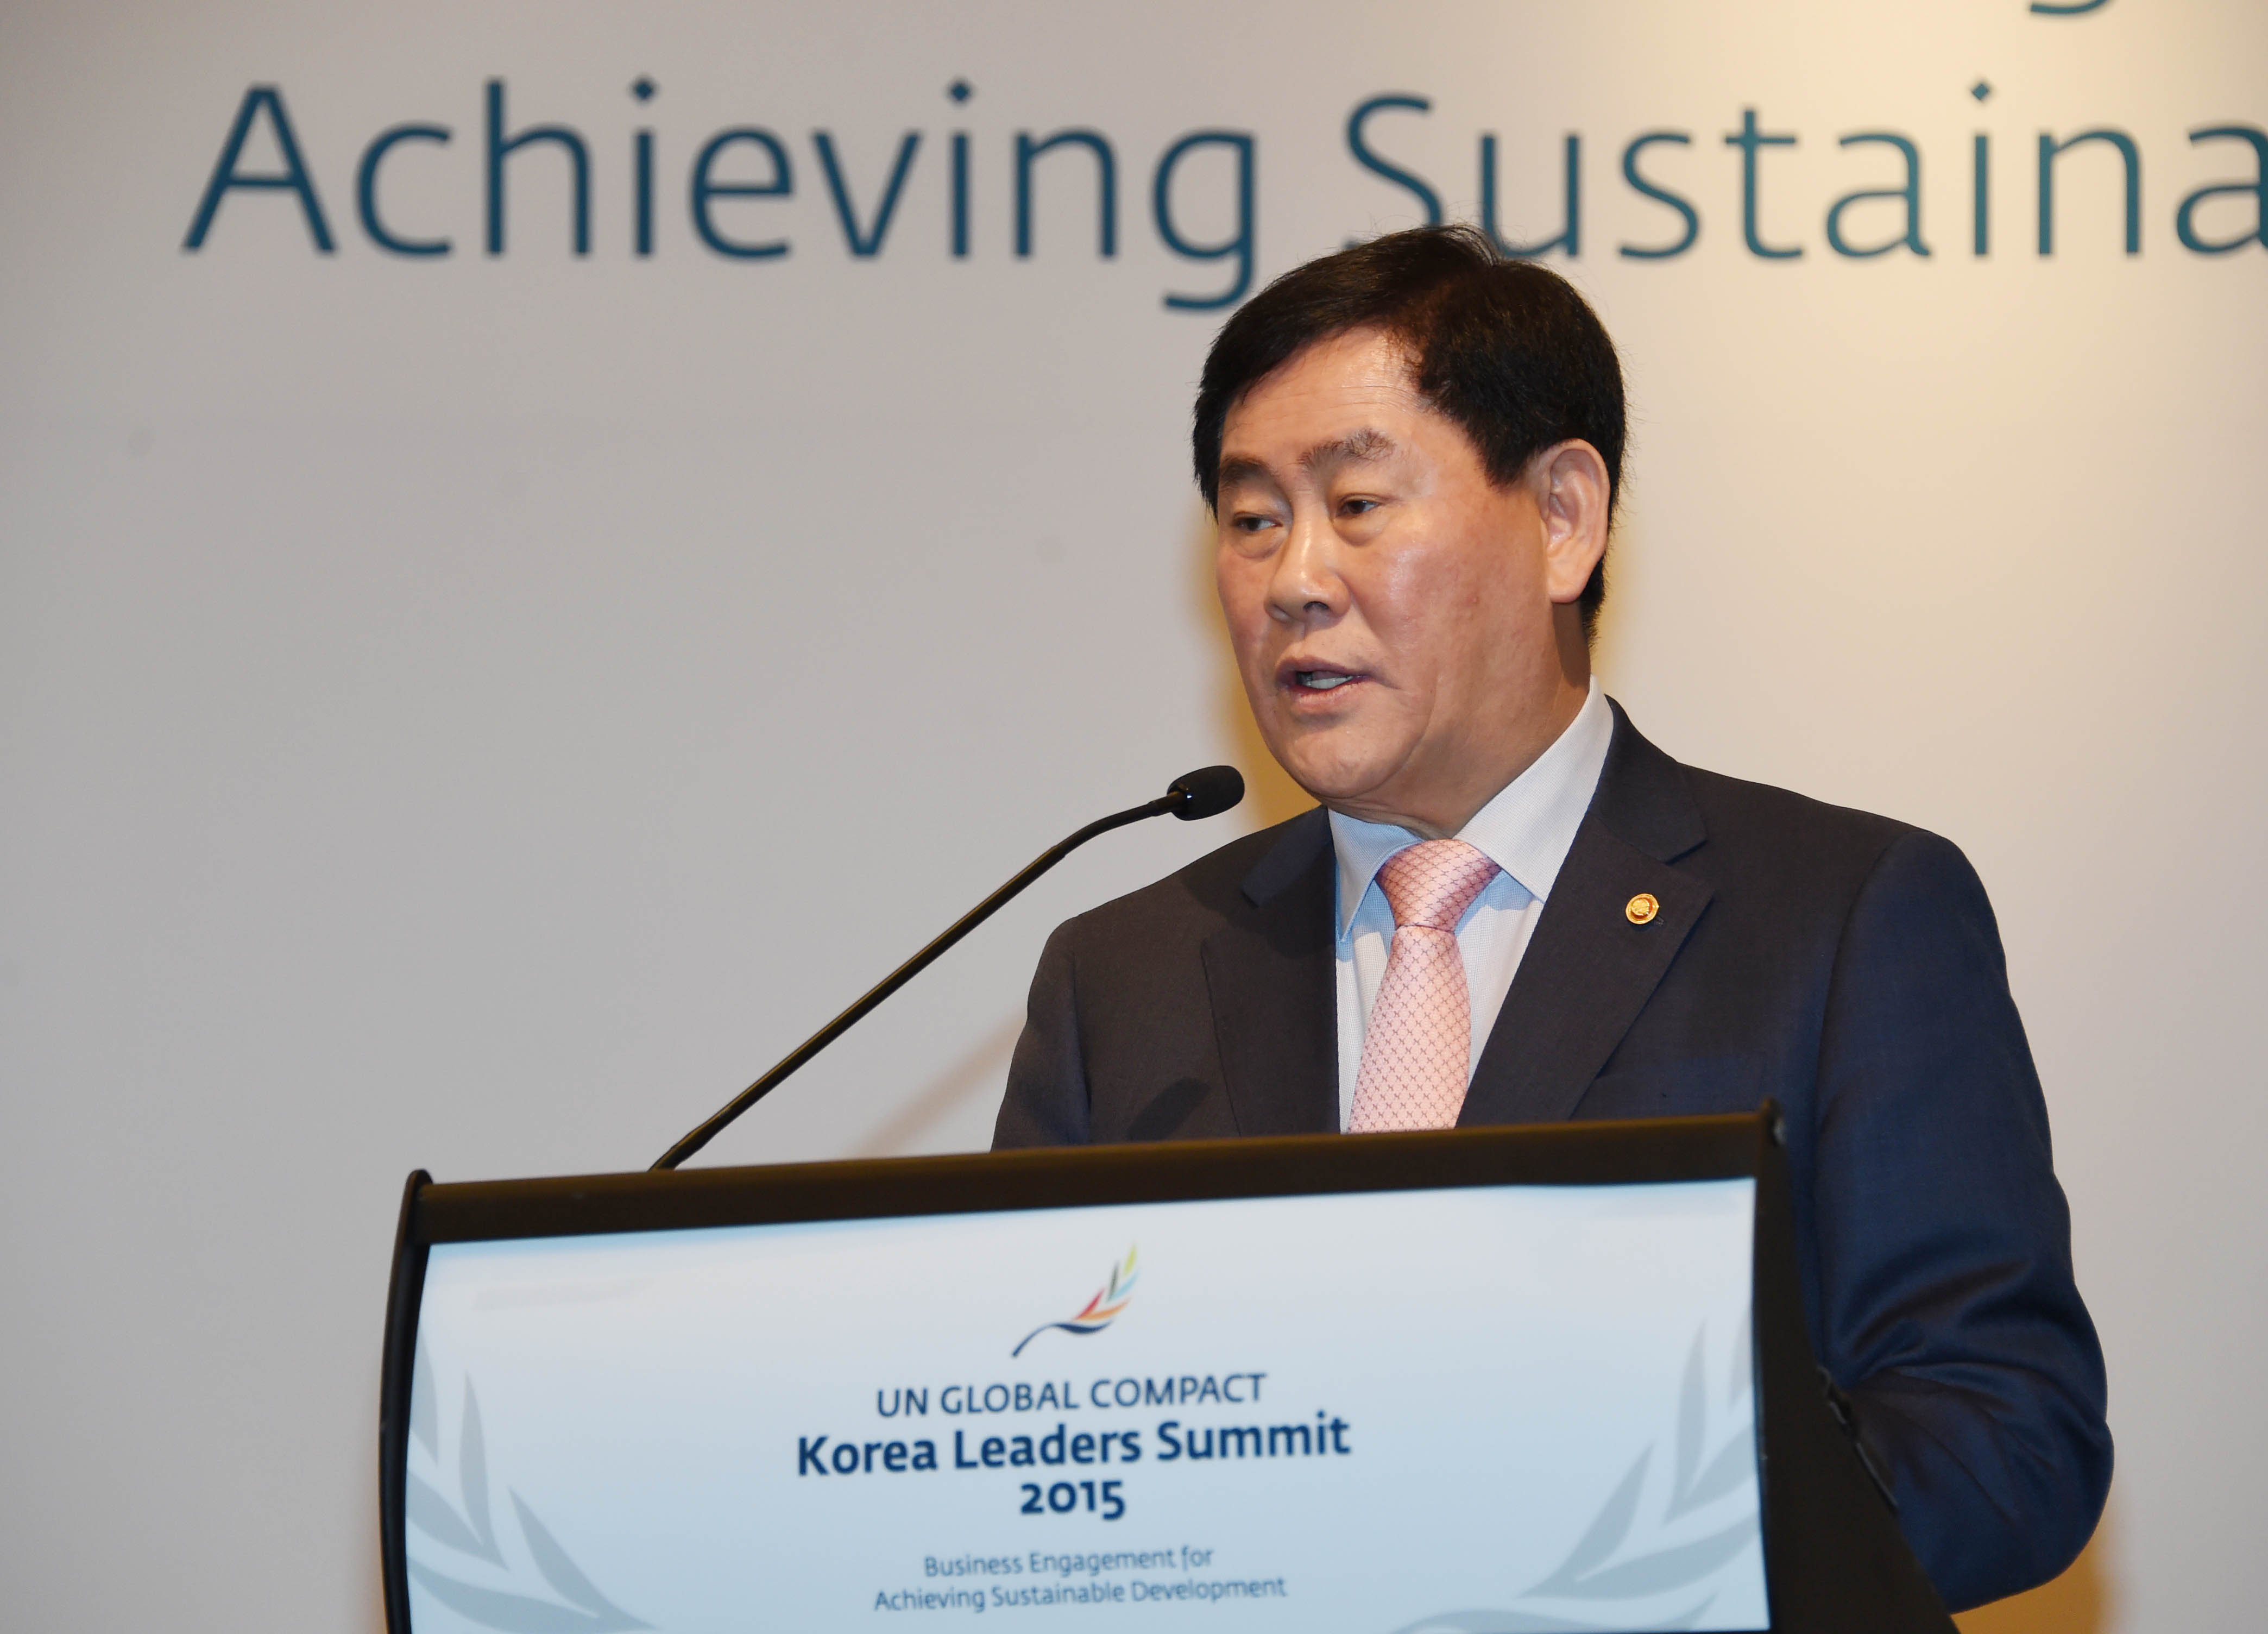 Deputy Prime Minister Choi delivers a speech at the 2015 UNGC Korea Leaders Summit